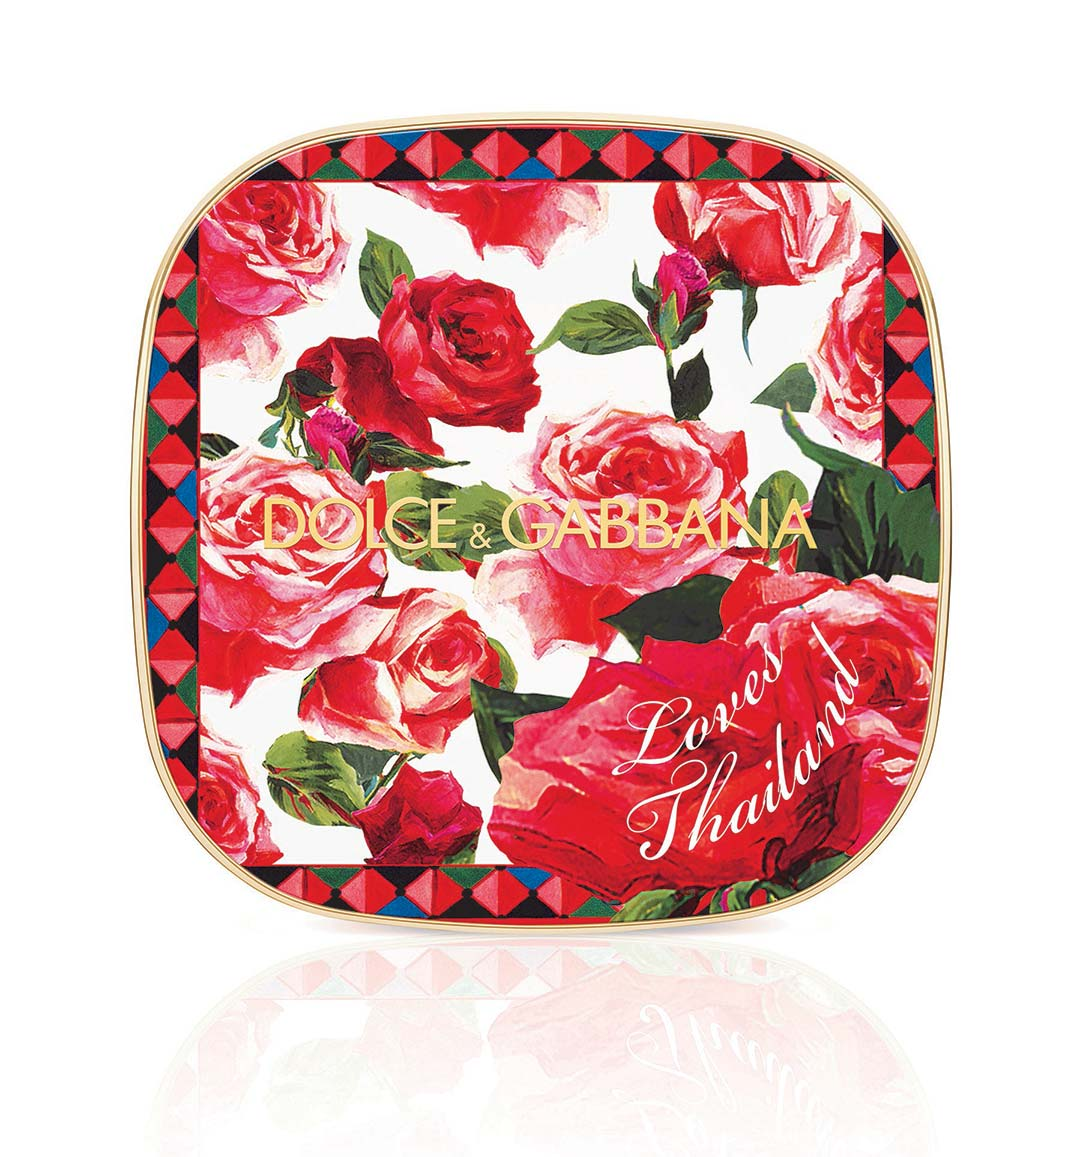 Love Collector Blush of Roses (Thailand Edition) Dolce & Gabbana Beauty Spring Rose Garden